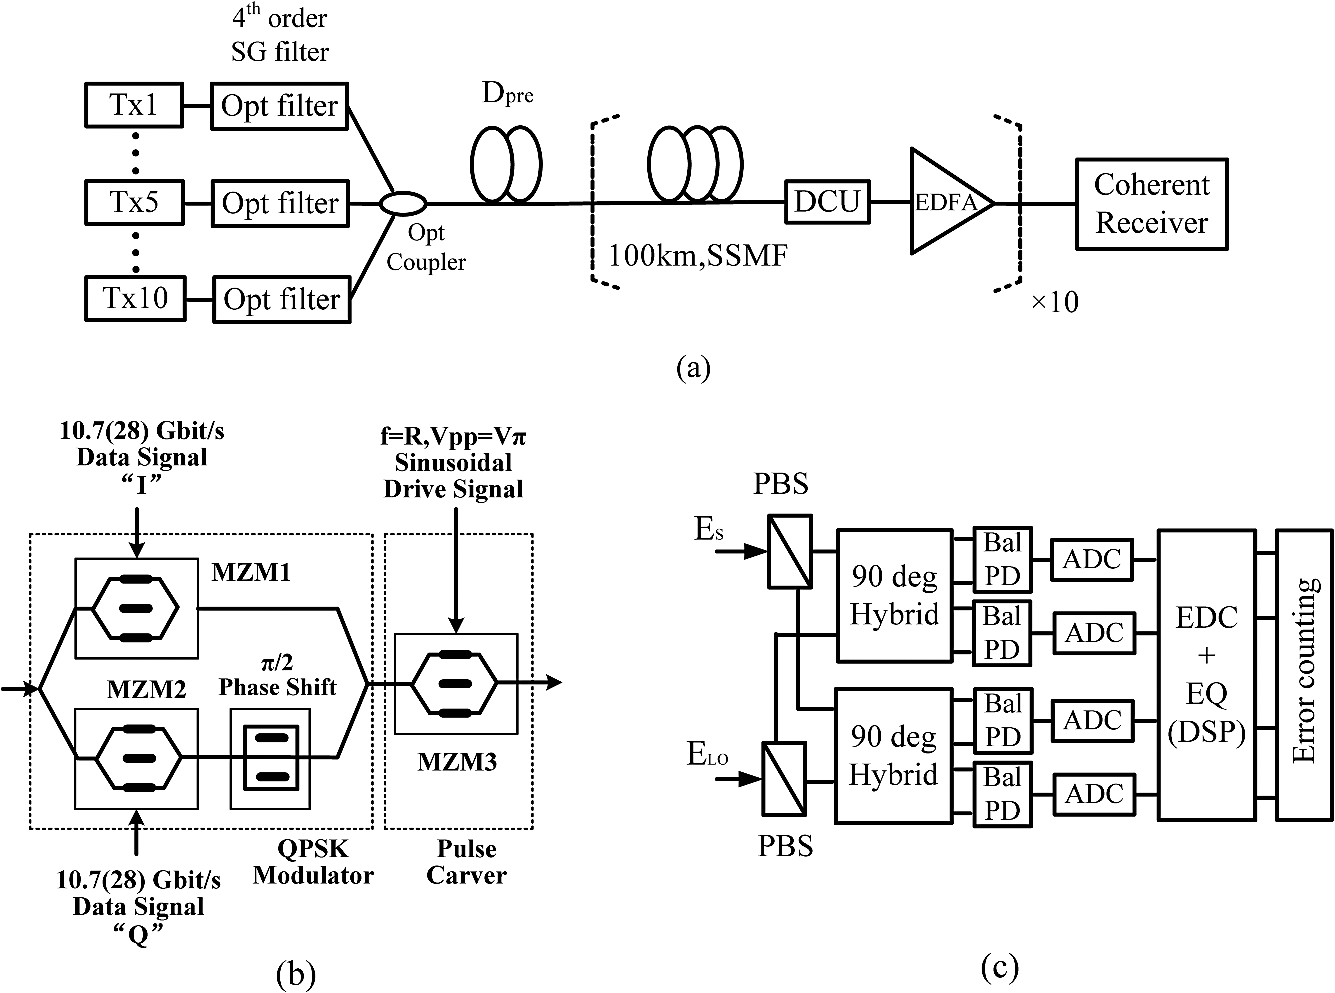 Nonlinear Phase Noise In Coherent Polarization Multiplexed Wiring Diagram Fig 1 7 Is Similar To A Single Line Block B Of The Nrz Rz Pm Qpsk Transmitter One C Receiver Based On Dsp Technology